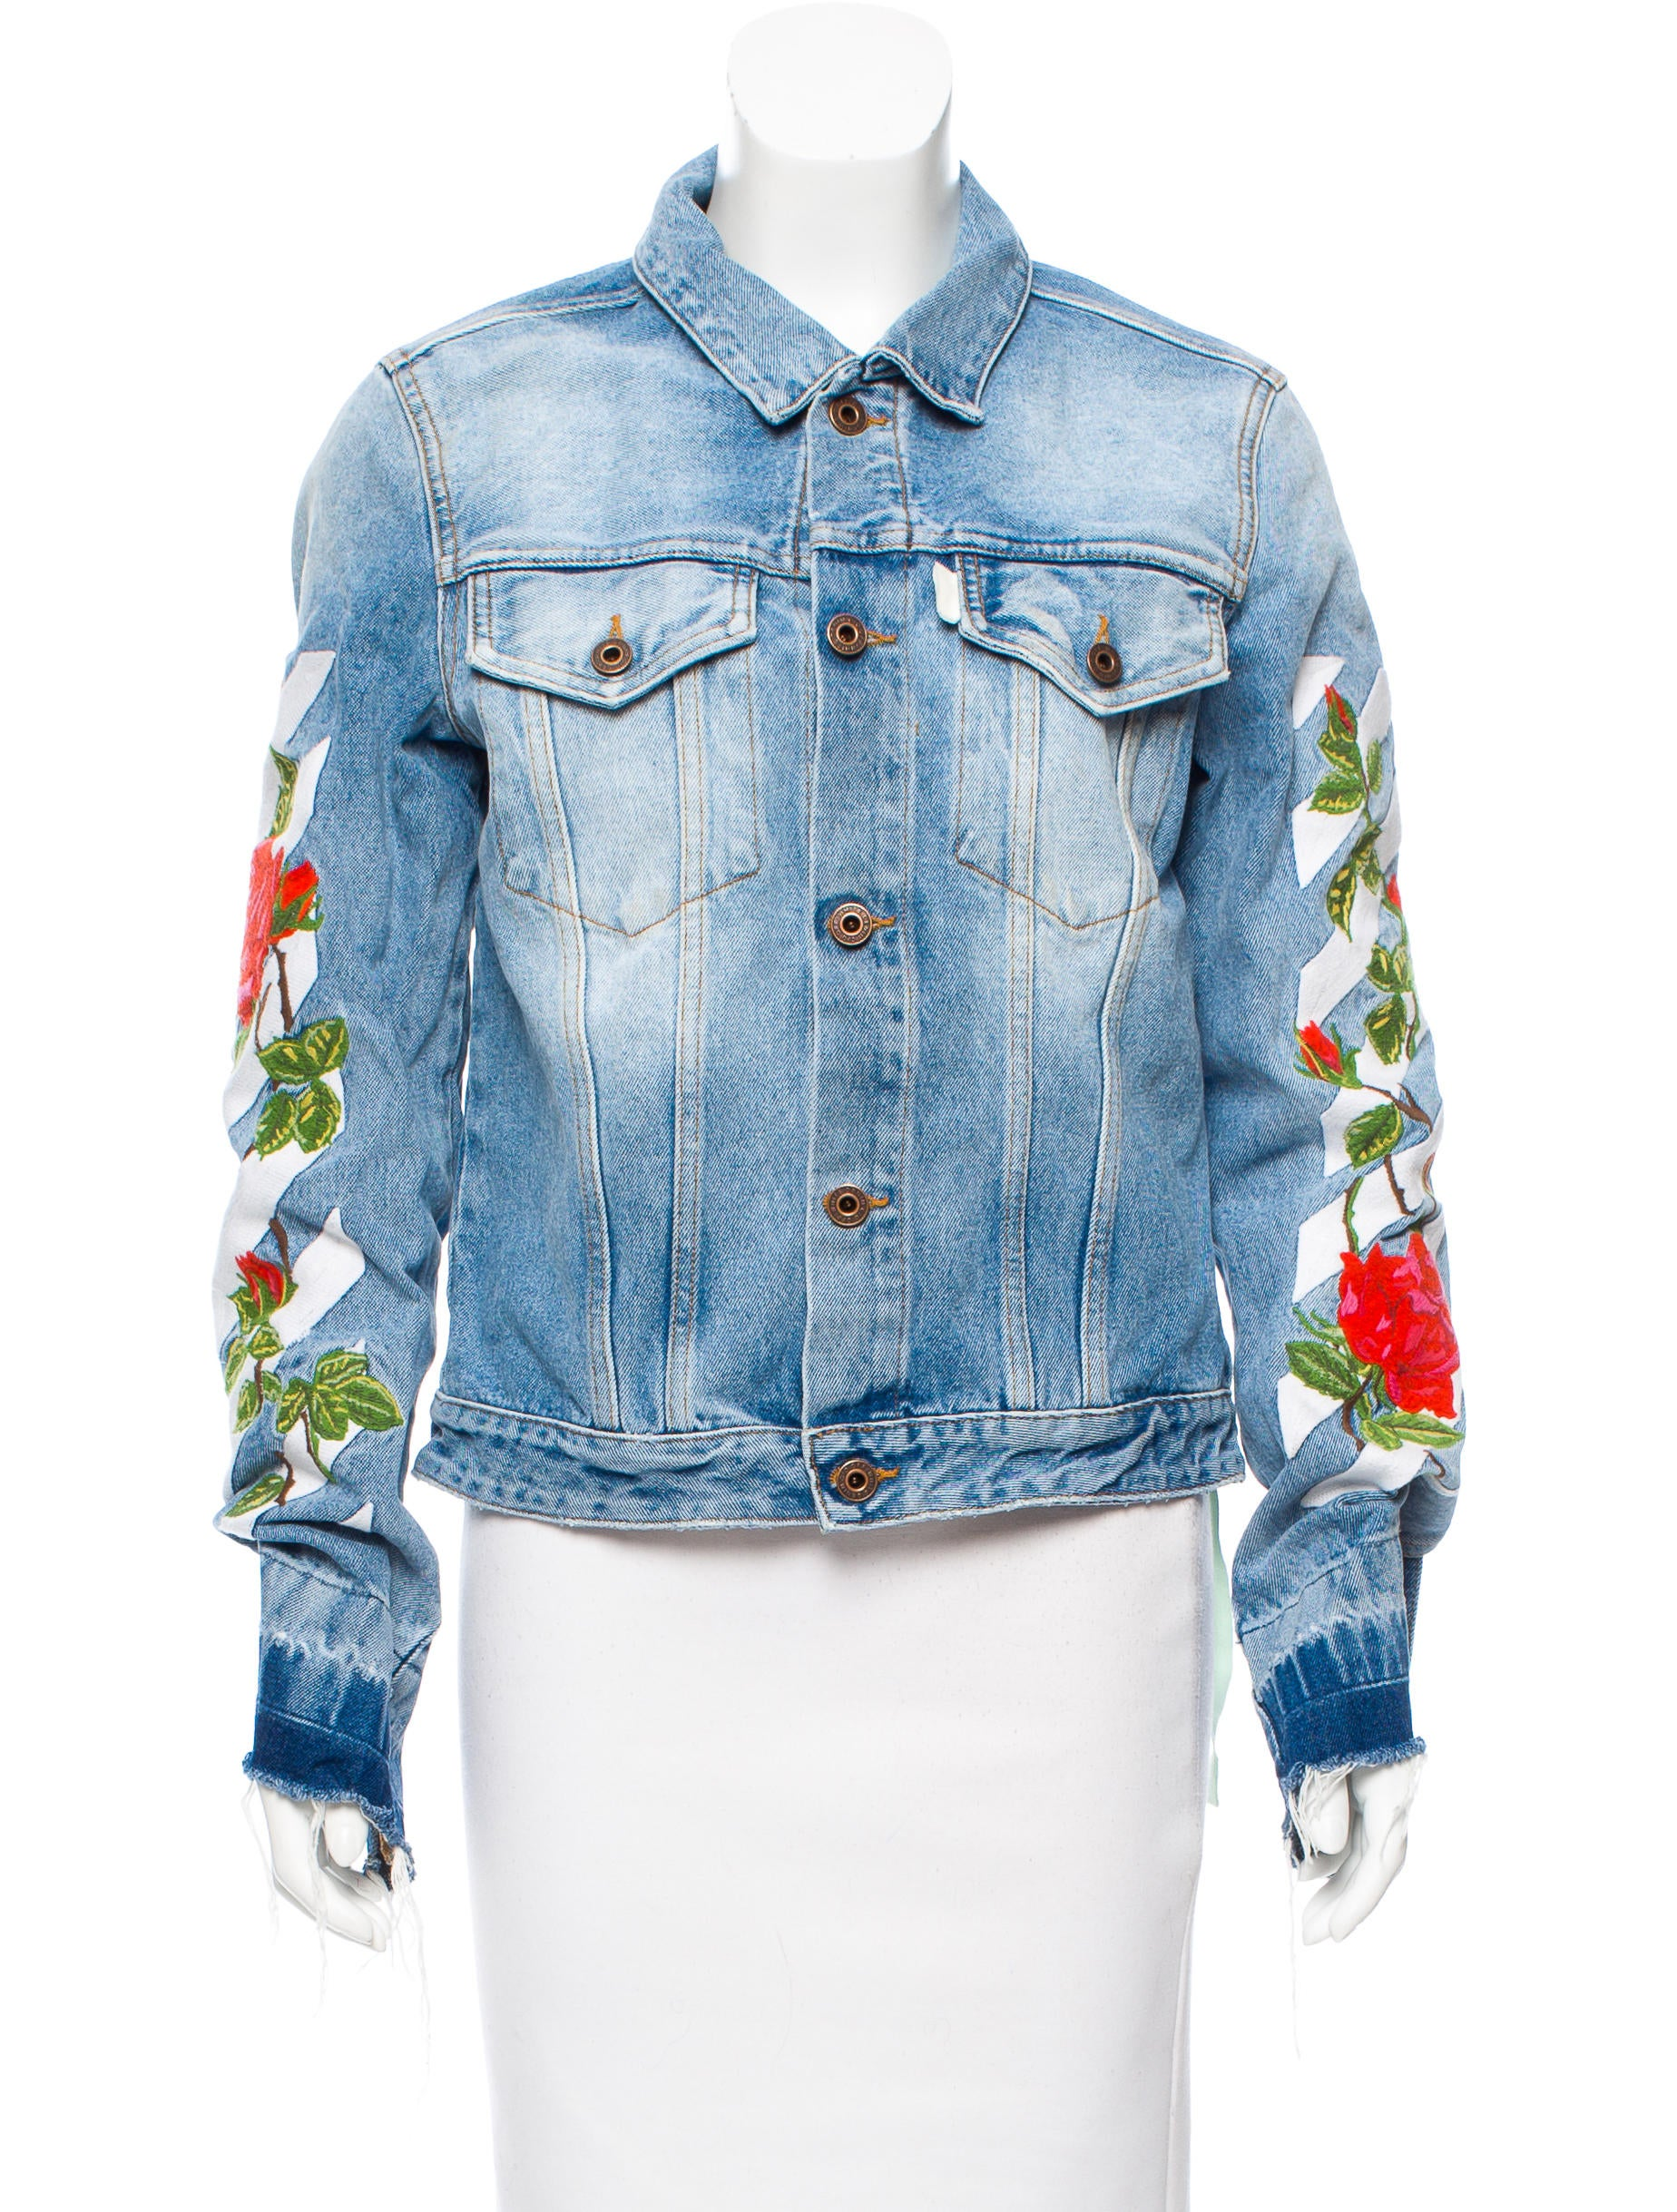 3a5618ff039f Off-White Embroidered Denim Jacket - Clothing - OFF20492